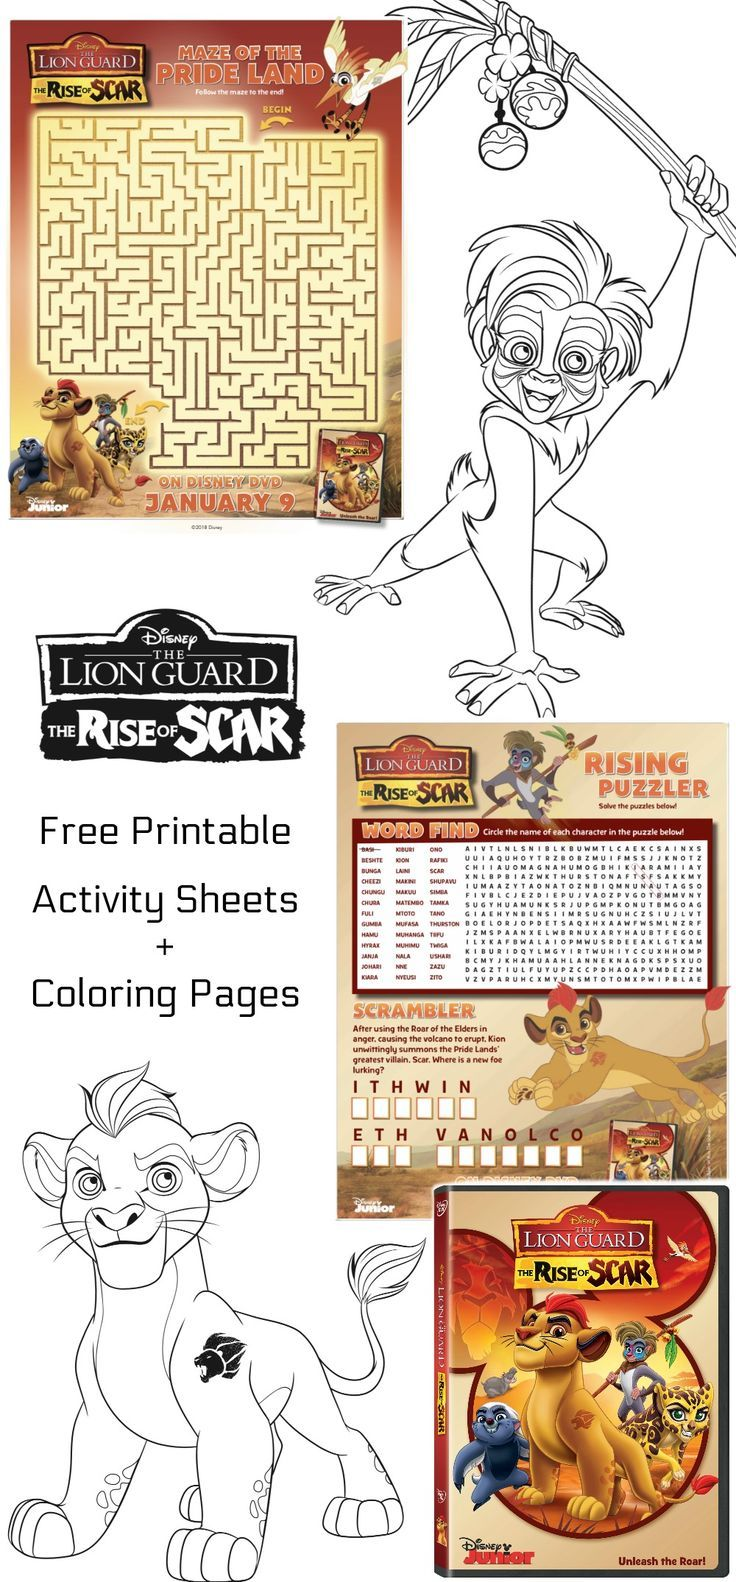 We Are Sharing Free Printable Disney The Lion Guard Coloring Pages And Activity Sheets To Celebrate The Relea Coloring Pages For Kids Coloring Pages Lion Guard